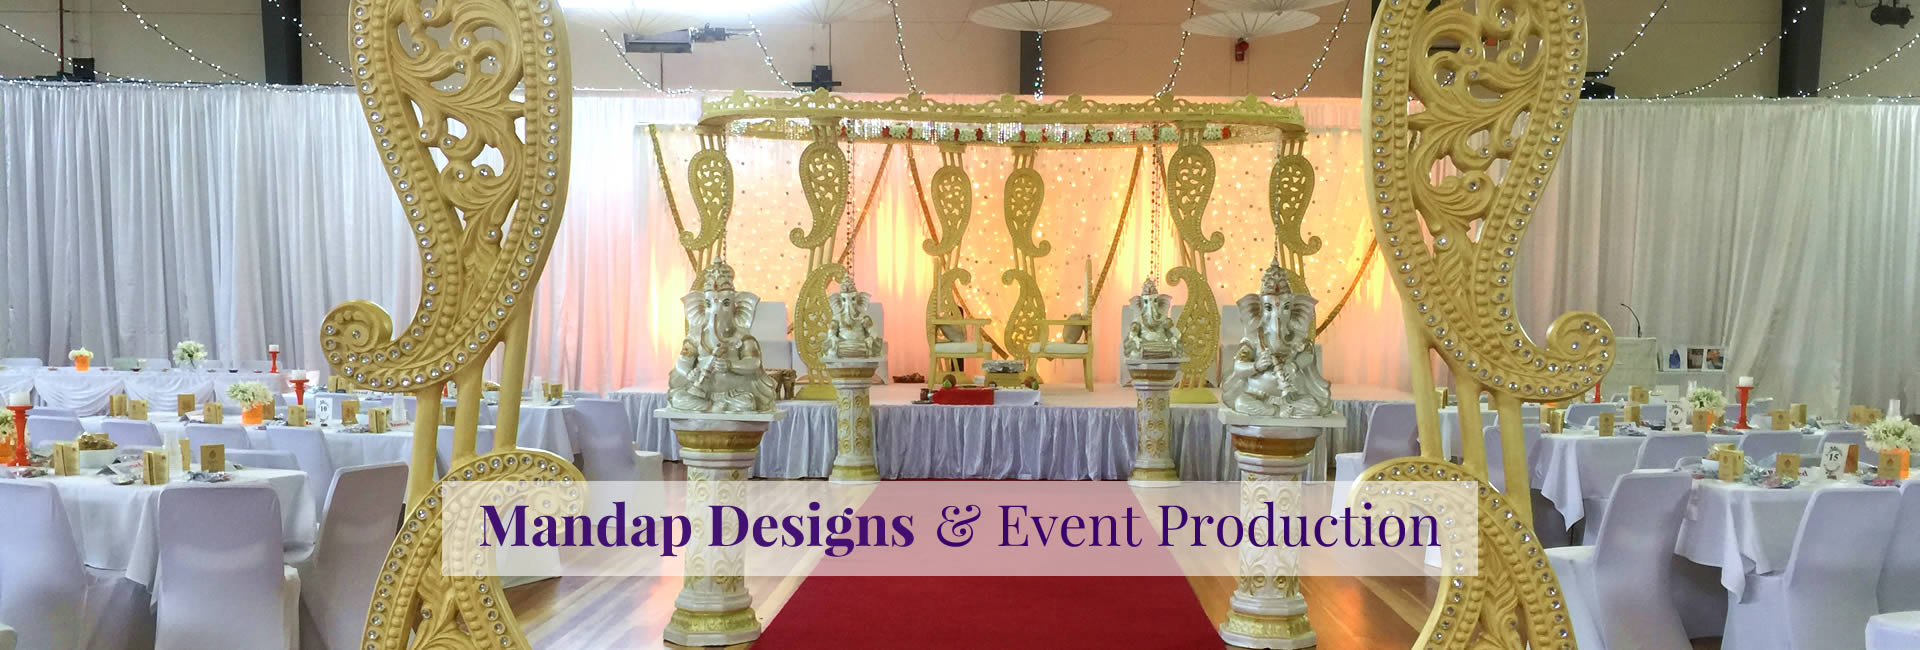 Wedding decorations stages mandaps ganesh chair covers for hire junglespirit Gallery